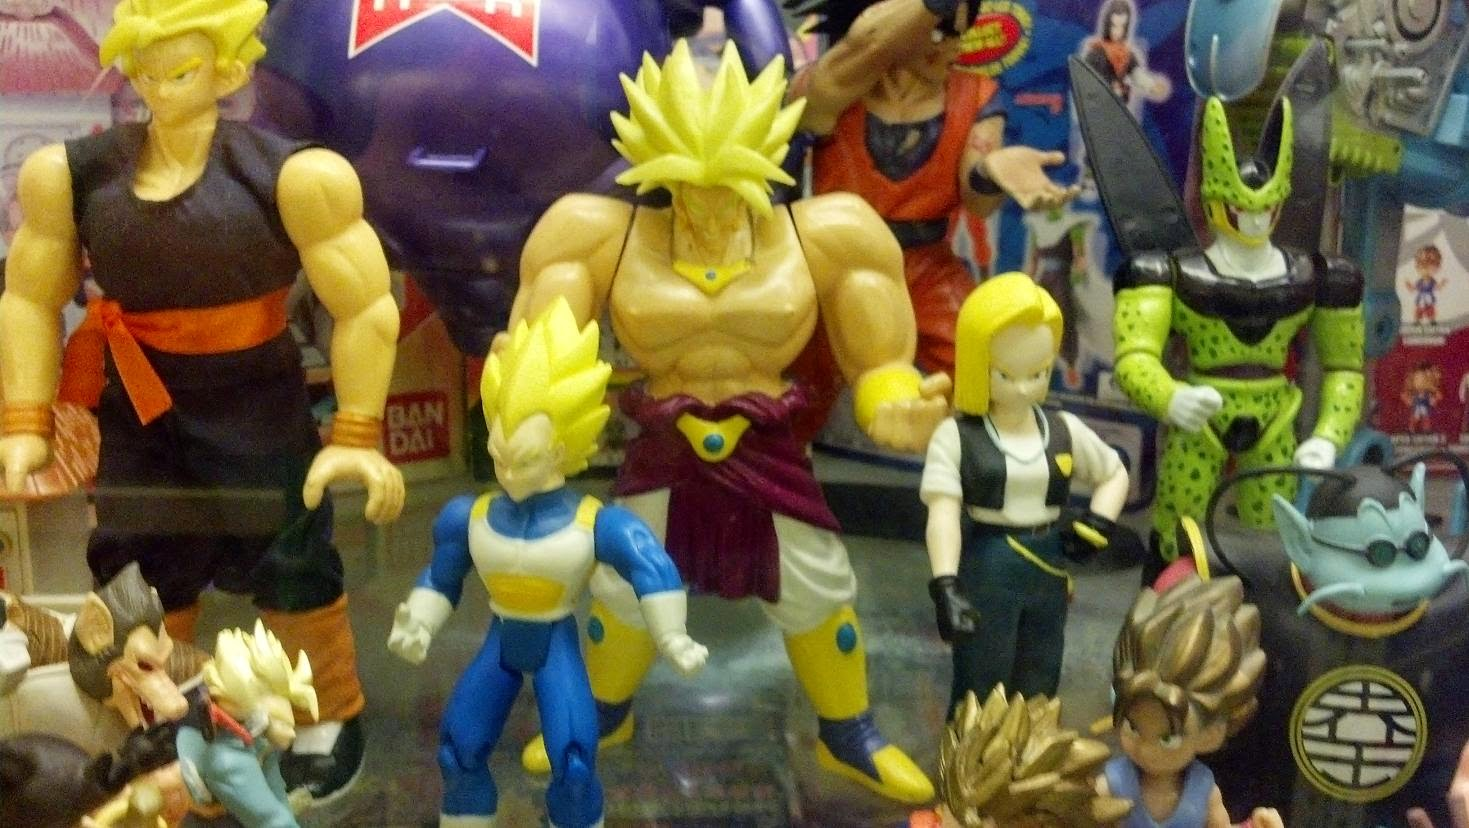 dragon ball puppet,dragon ball,dragon,dragon ball series